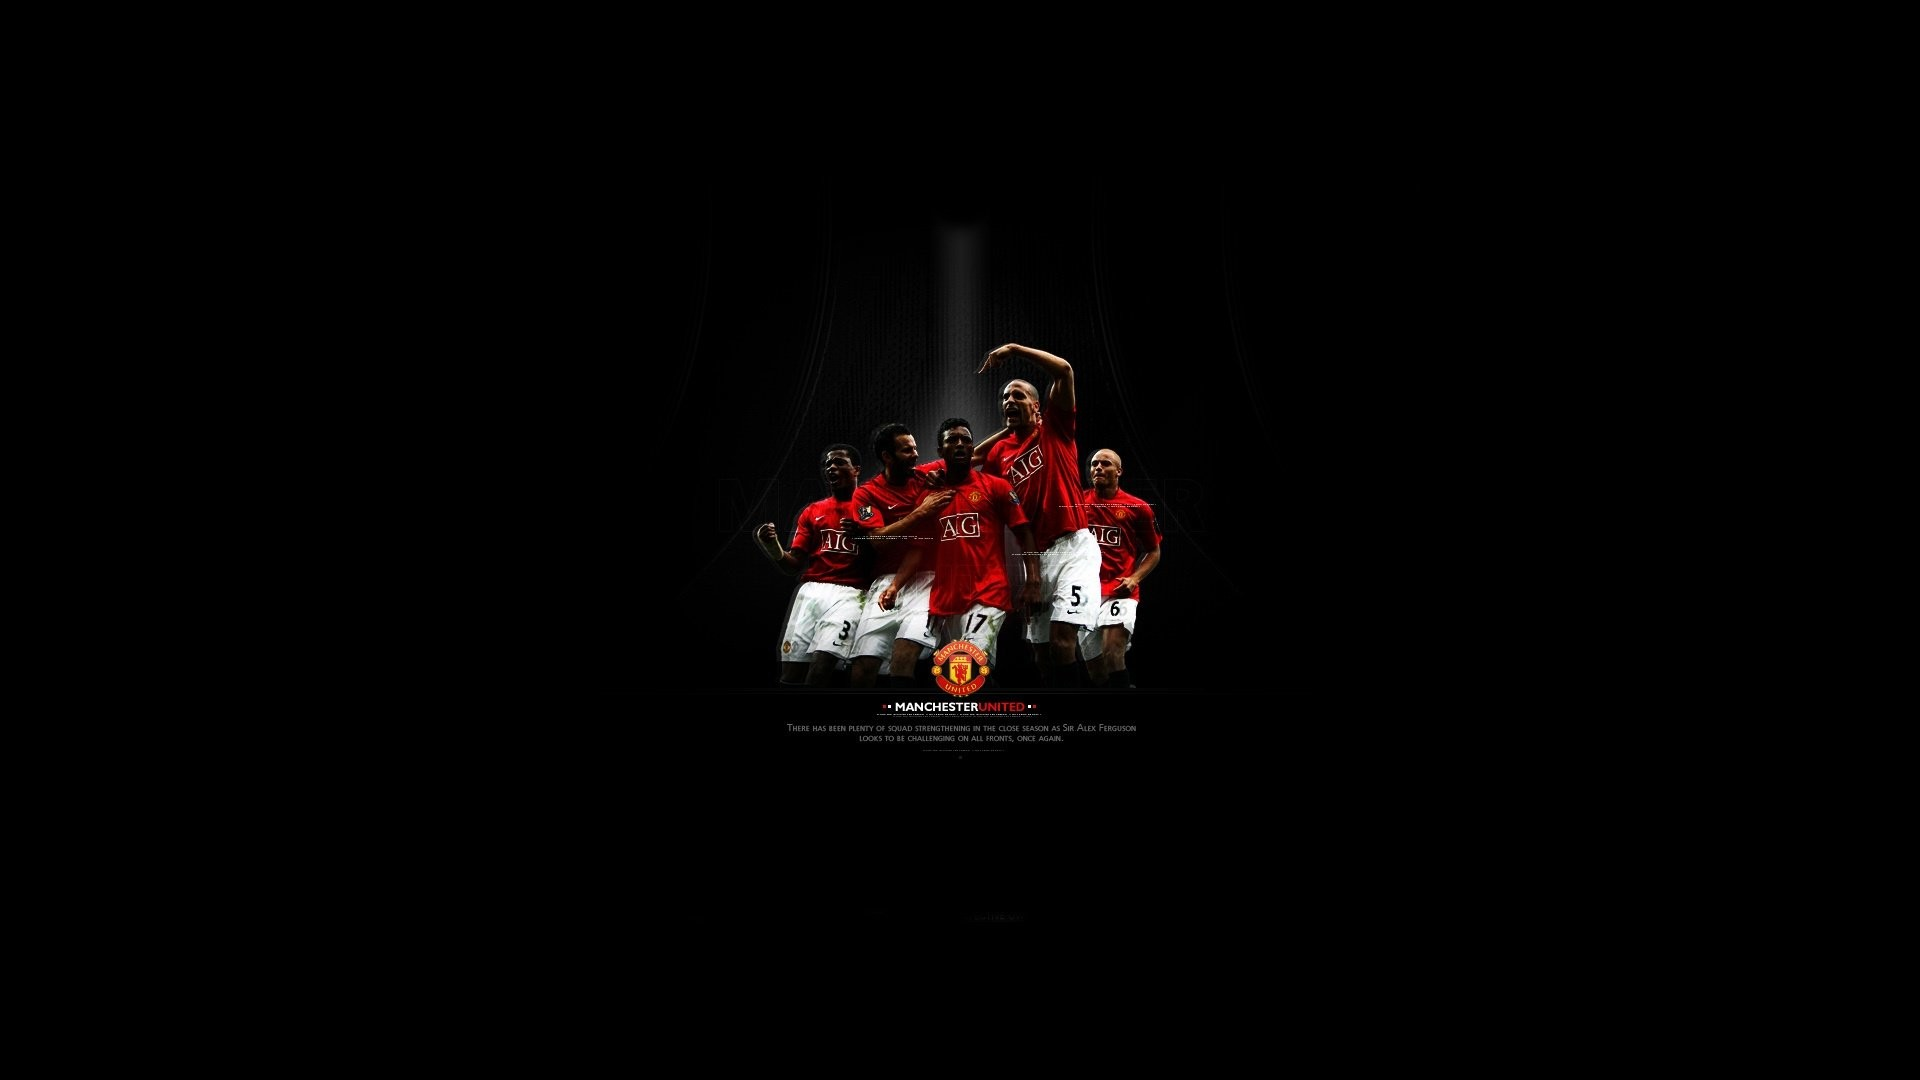 1920x1080 Manchester United 933388